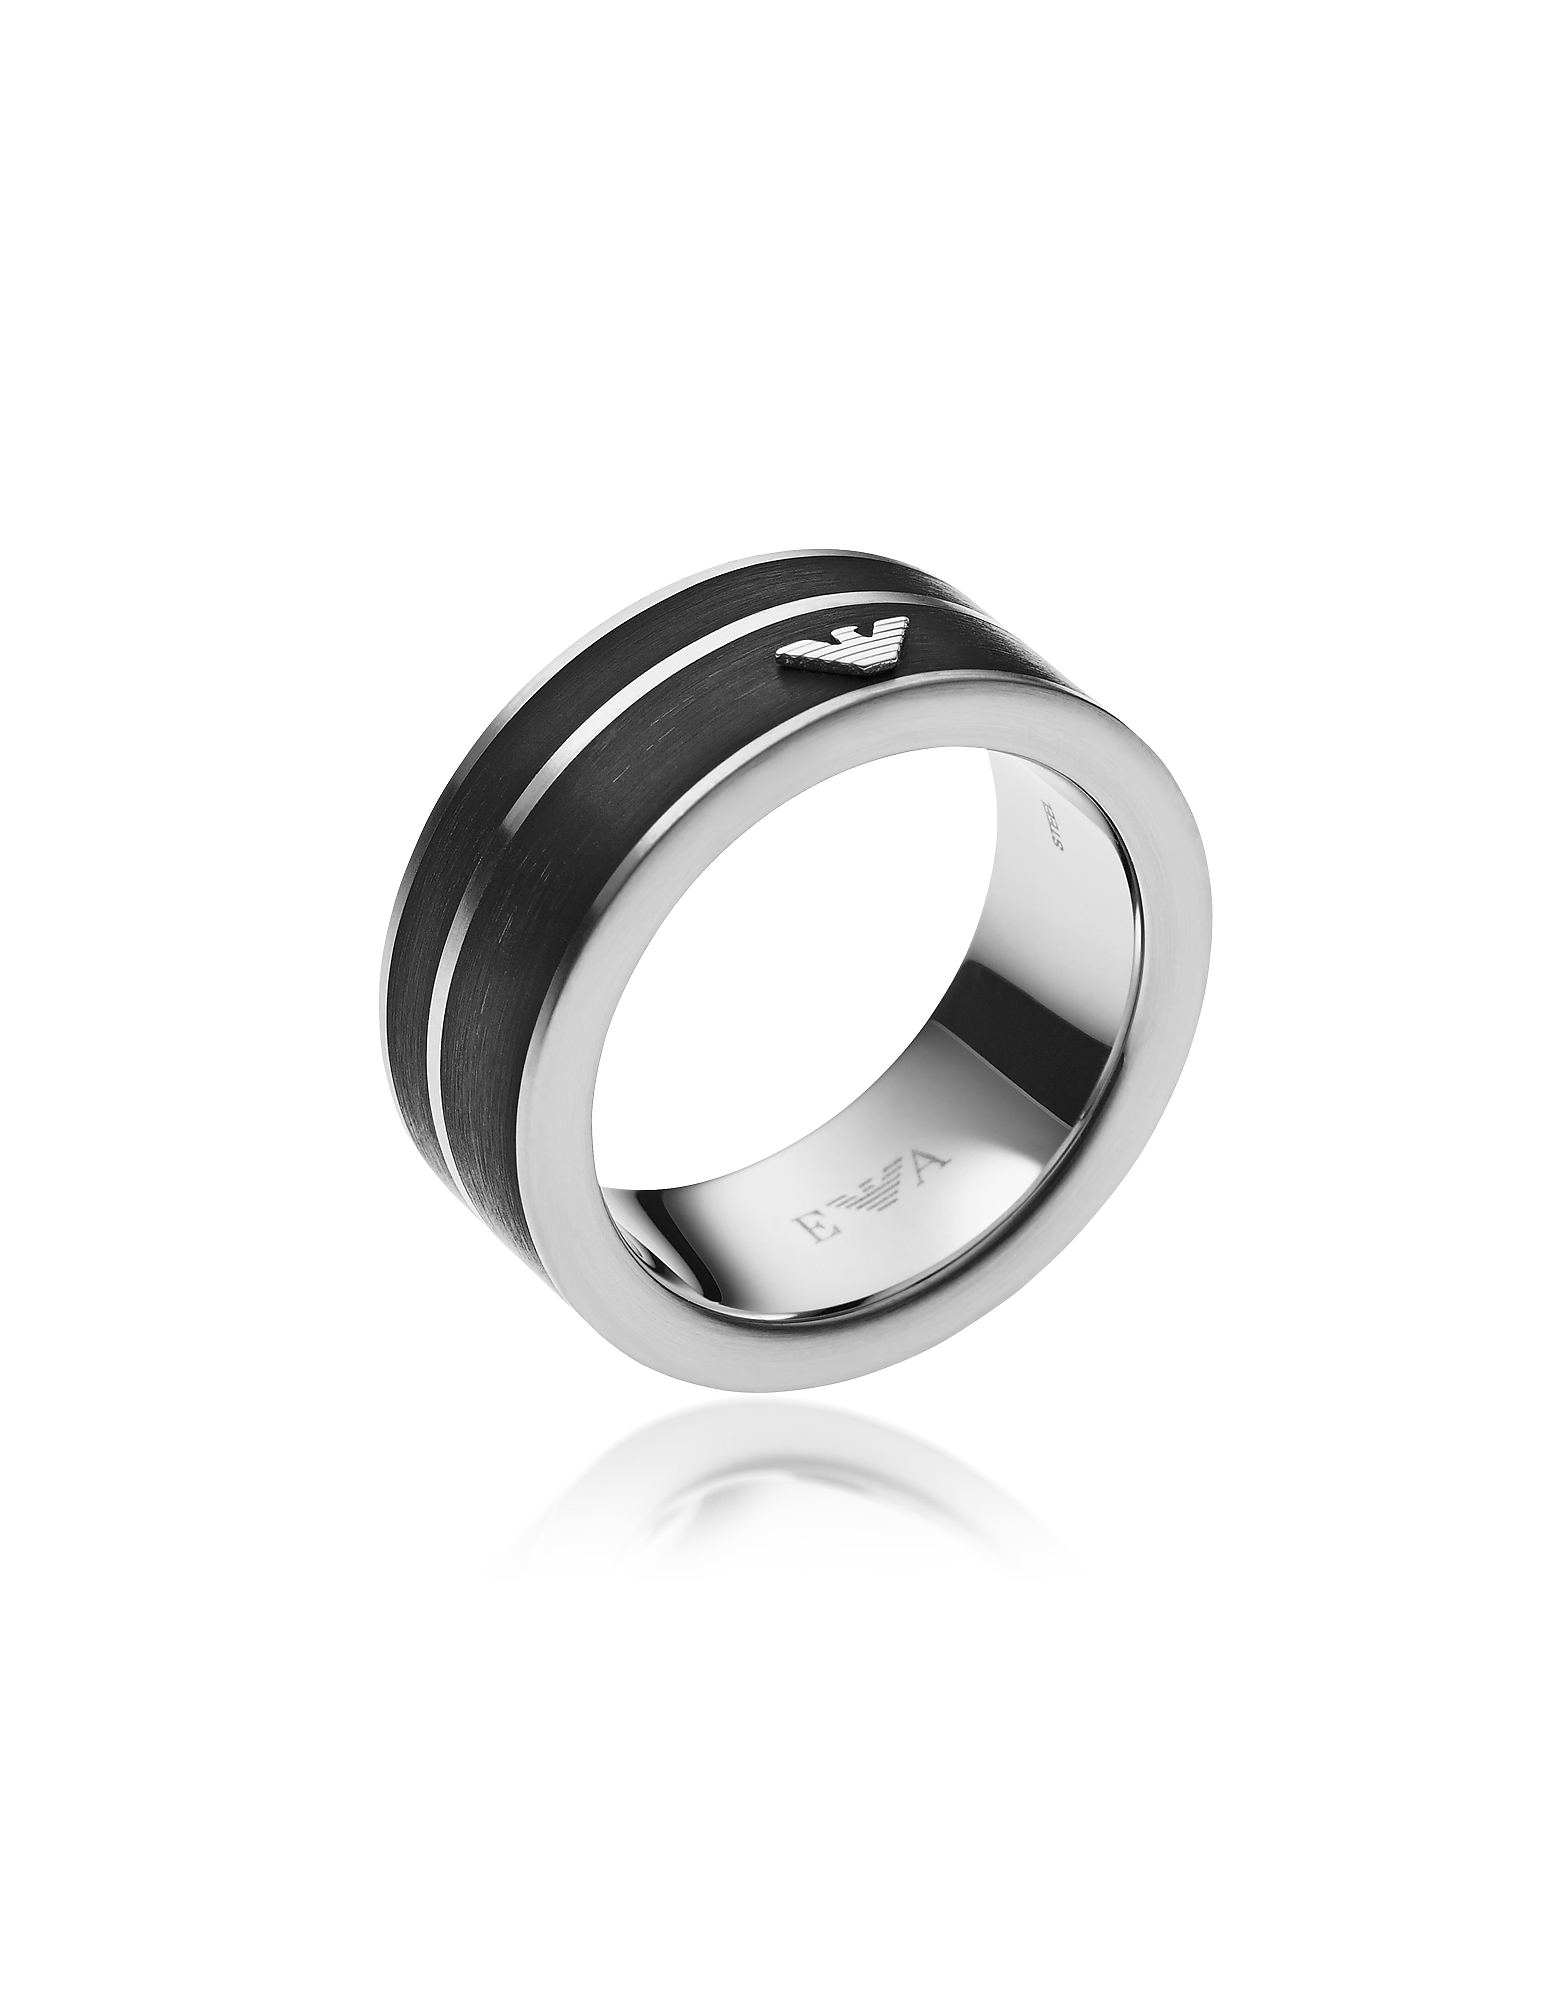 Black Stainless Steel Signature Men's Ring, Silver